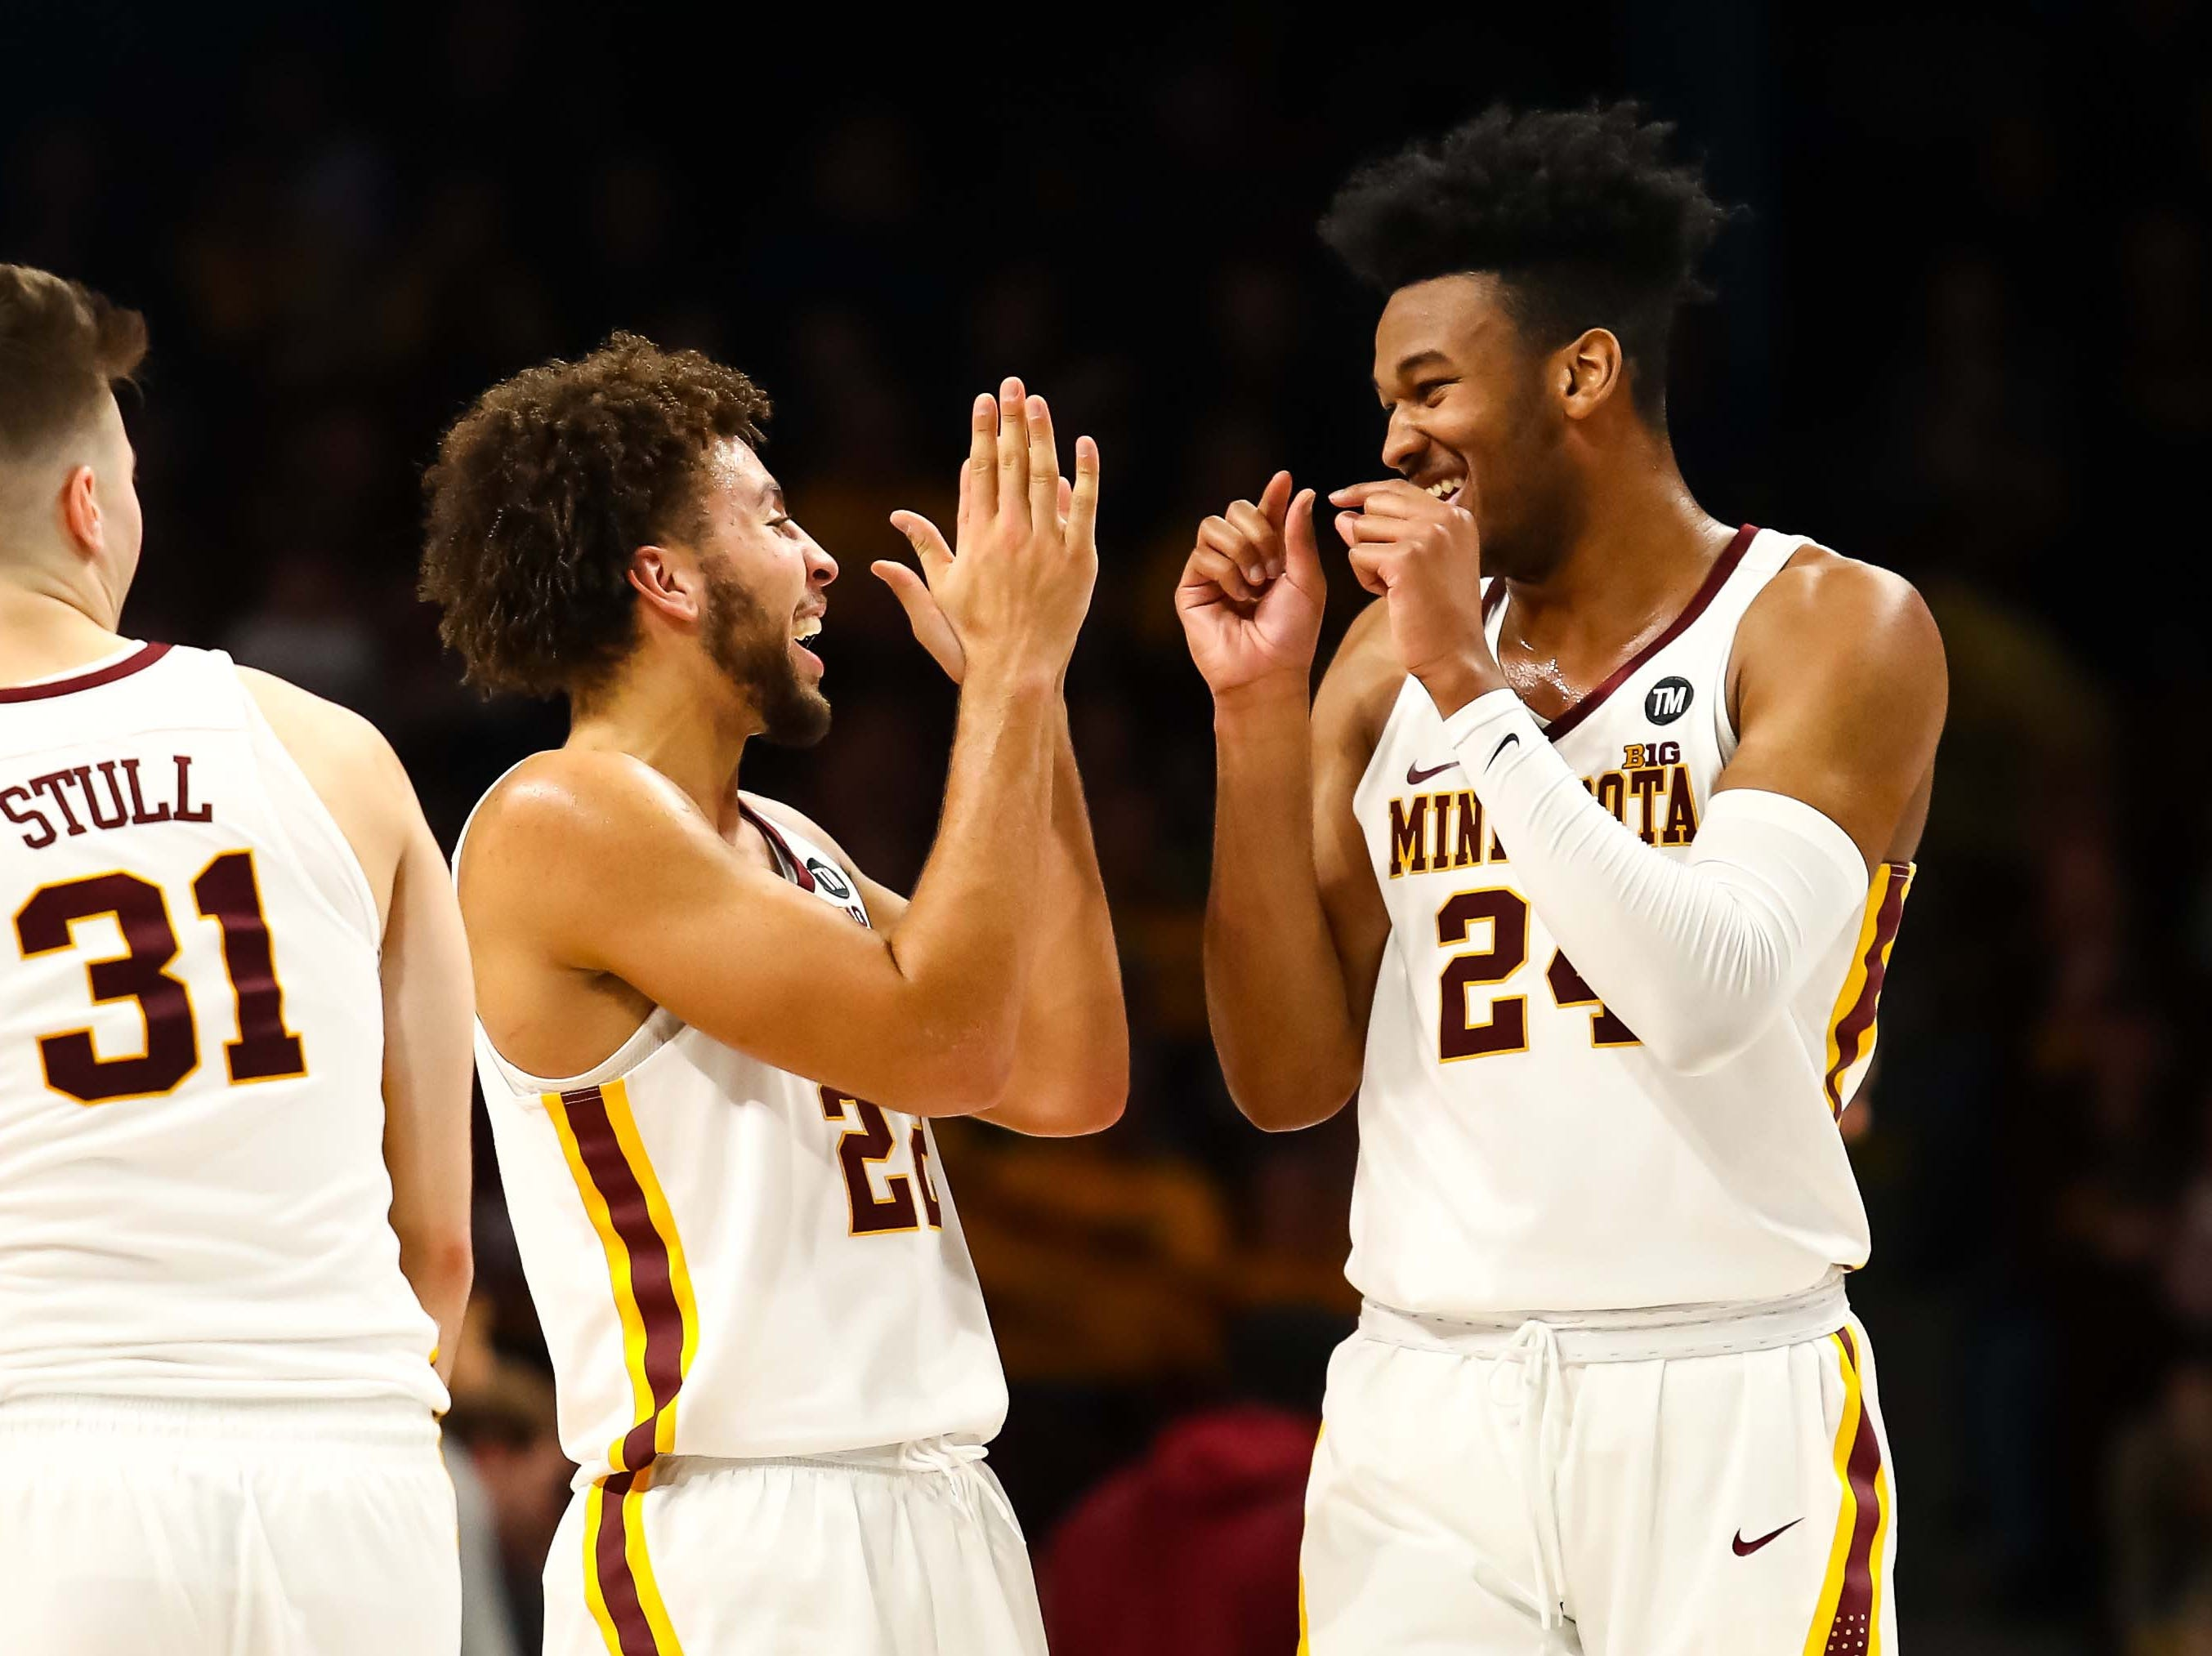 Minnesota Golden Gophers guard Gabe Kalscheur (22) and forward Eric Curry (24) laugh in the second half against the Indiana Hoosiers at Williams Arena. The Minnesota Golden Gophers defeatd the Indiana Hoosiers 84-63.